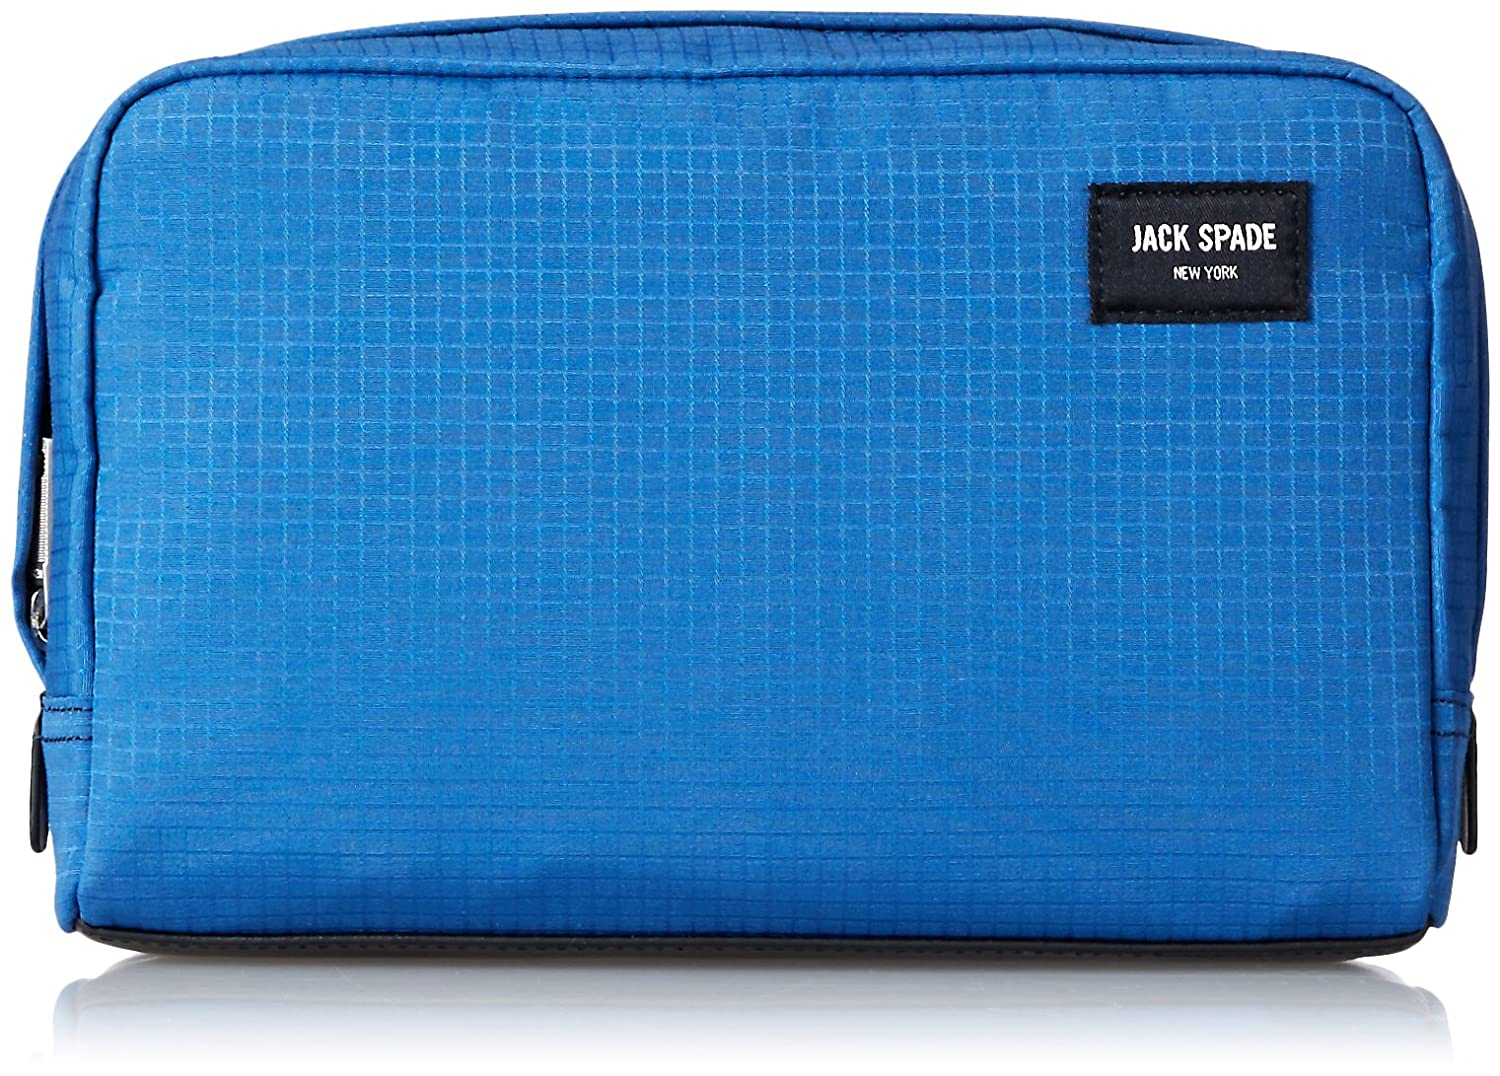 Amazon.com: Jack Spade Men's Solid Ripstop Slim Toiletry Kit, Admiral Blue:  Clothing